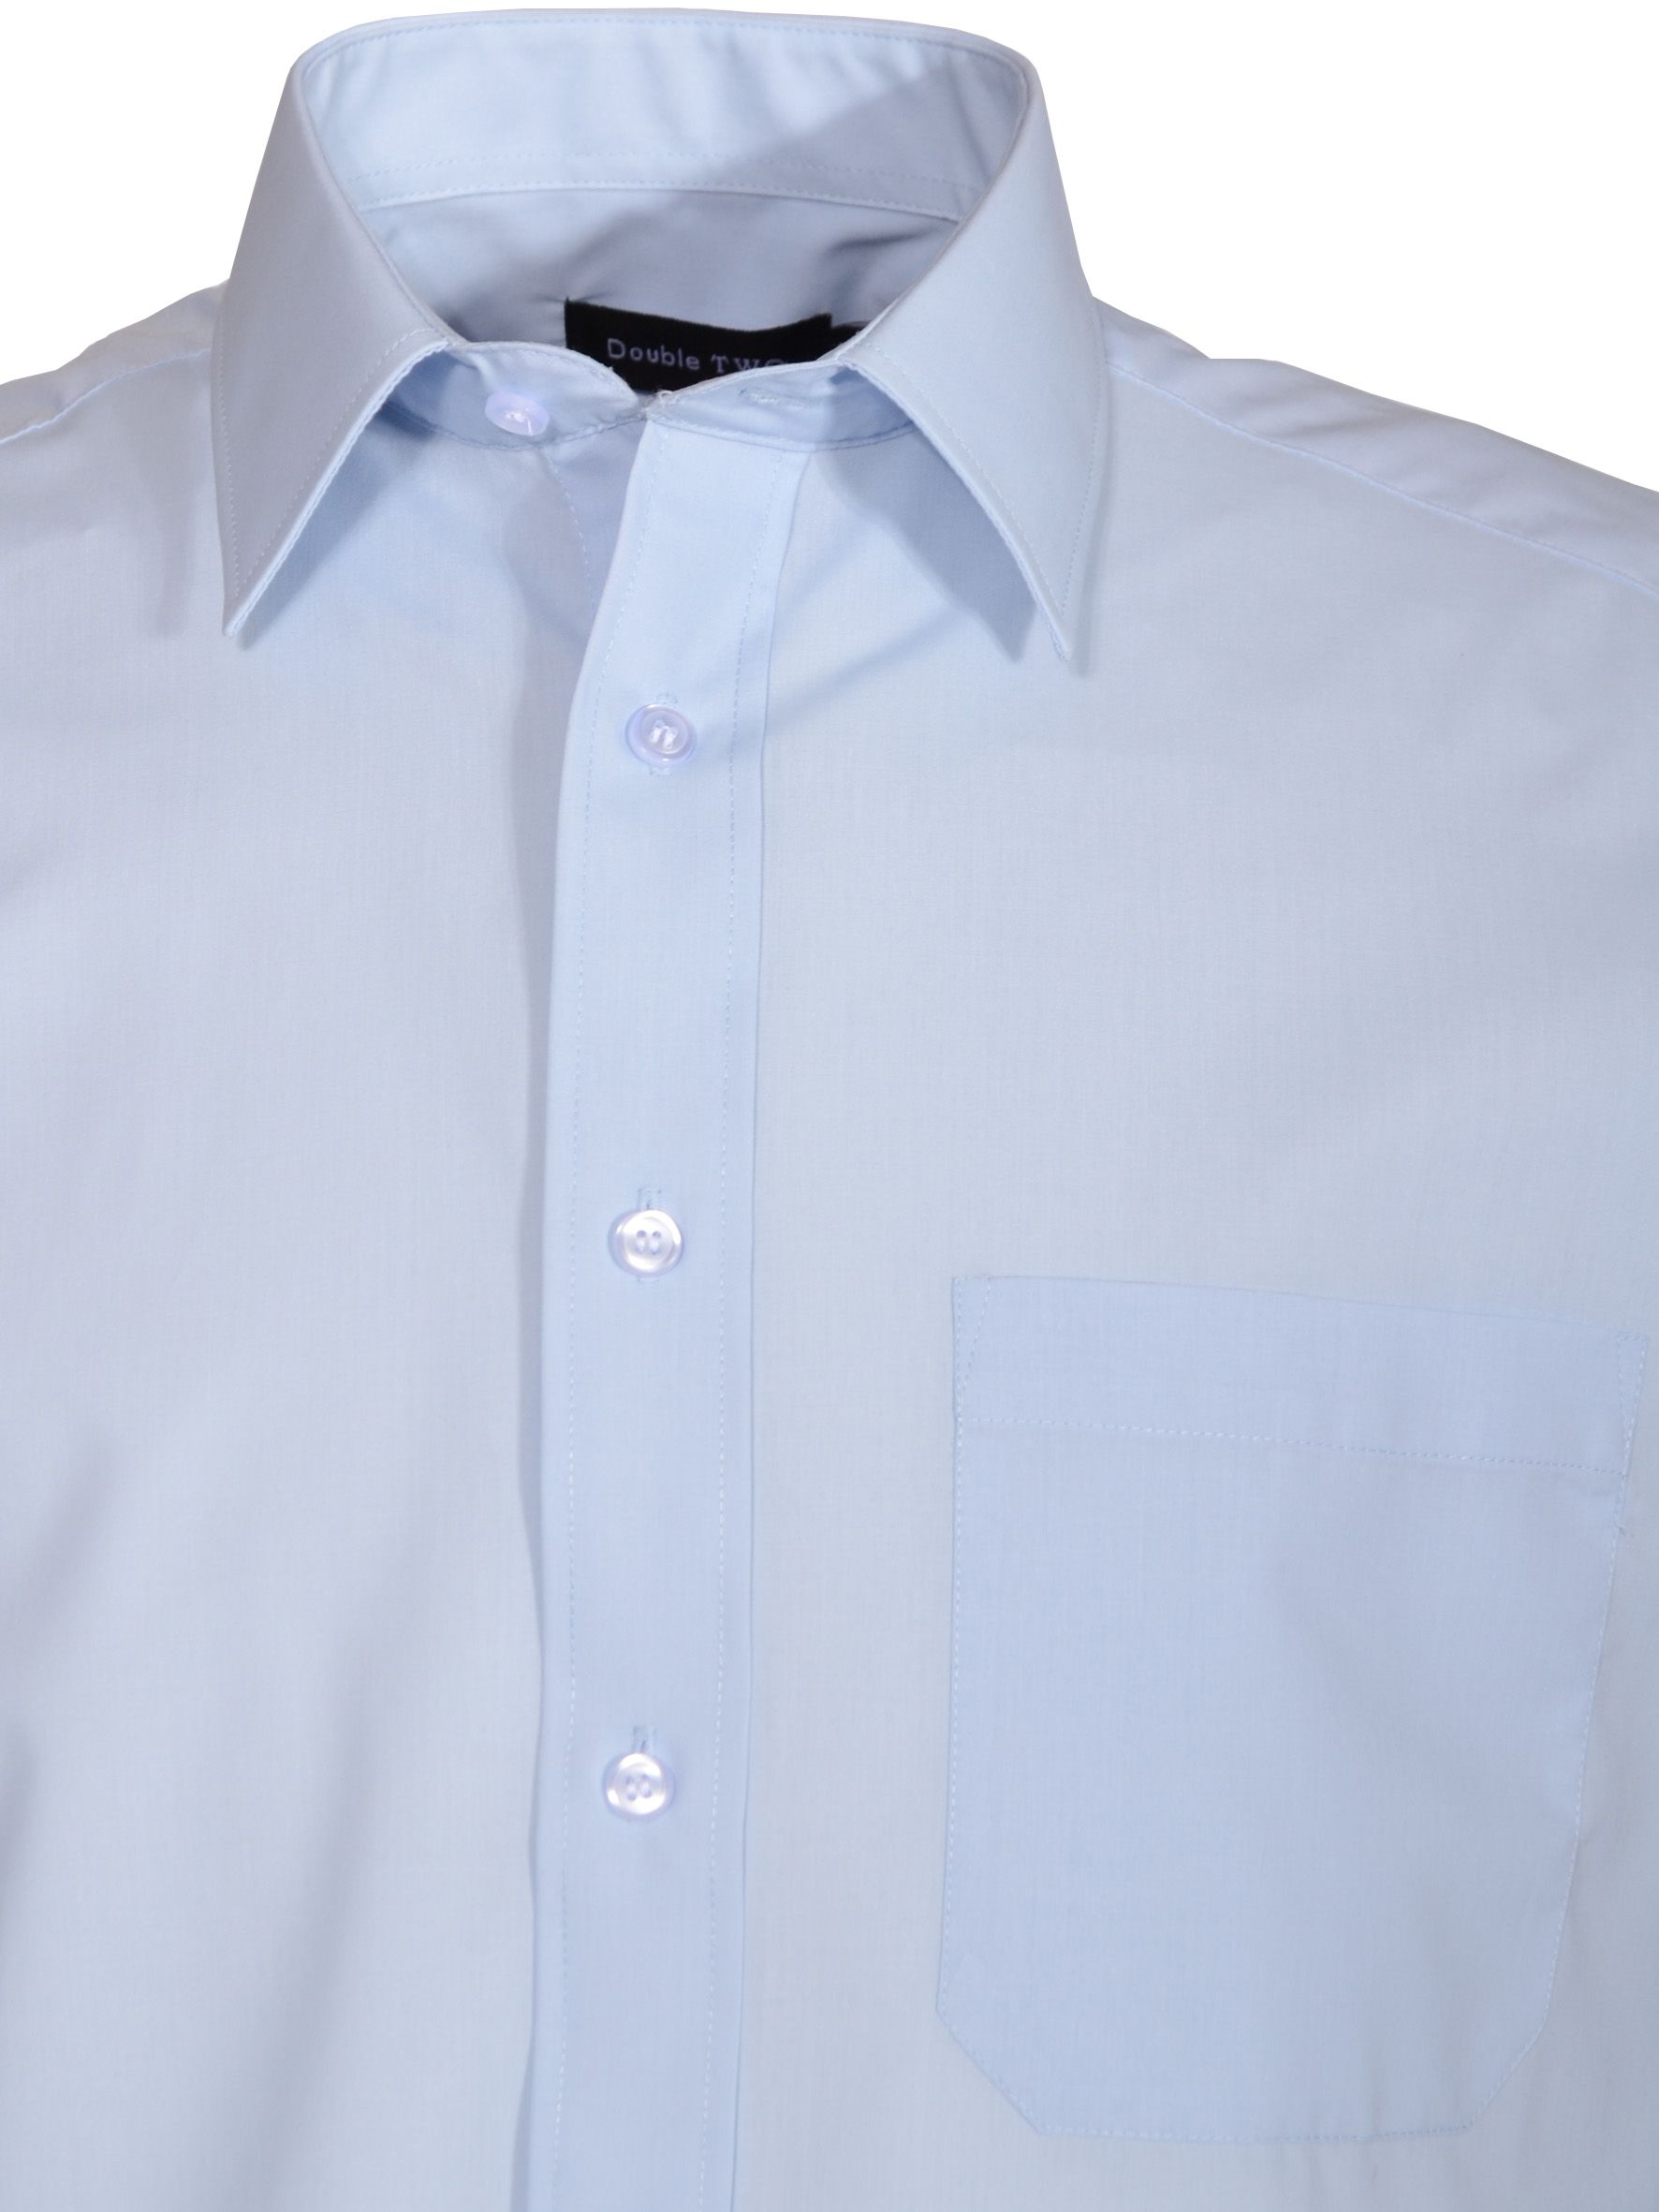 Classic plain short-sleeve shirt